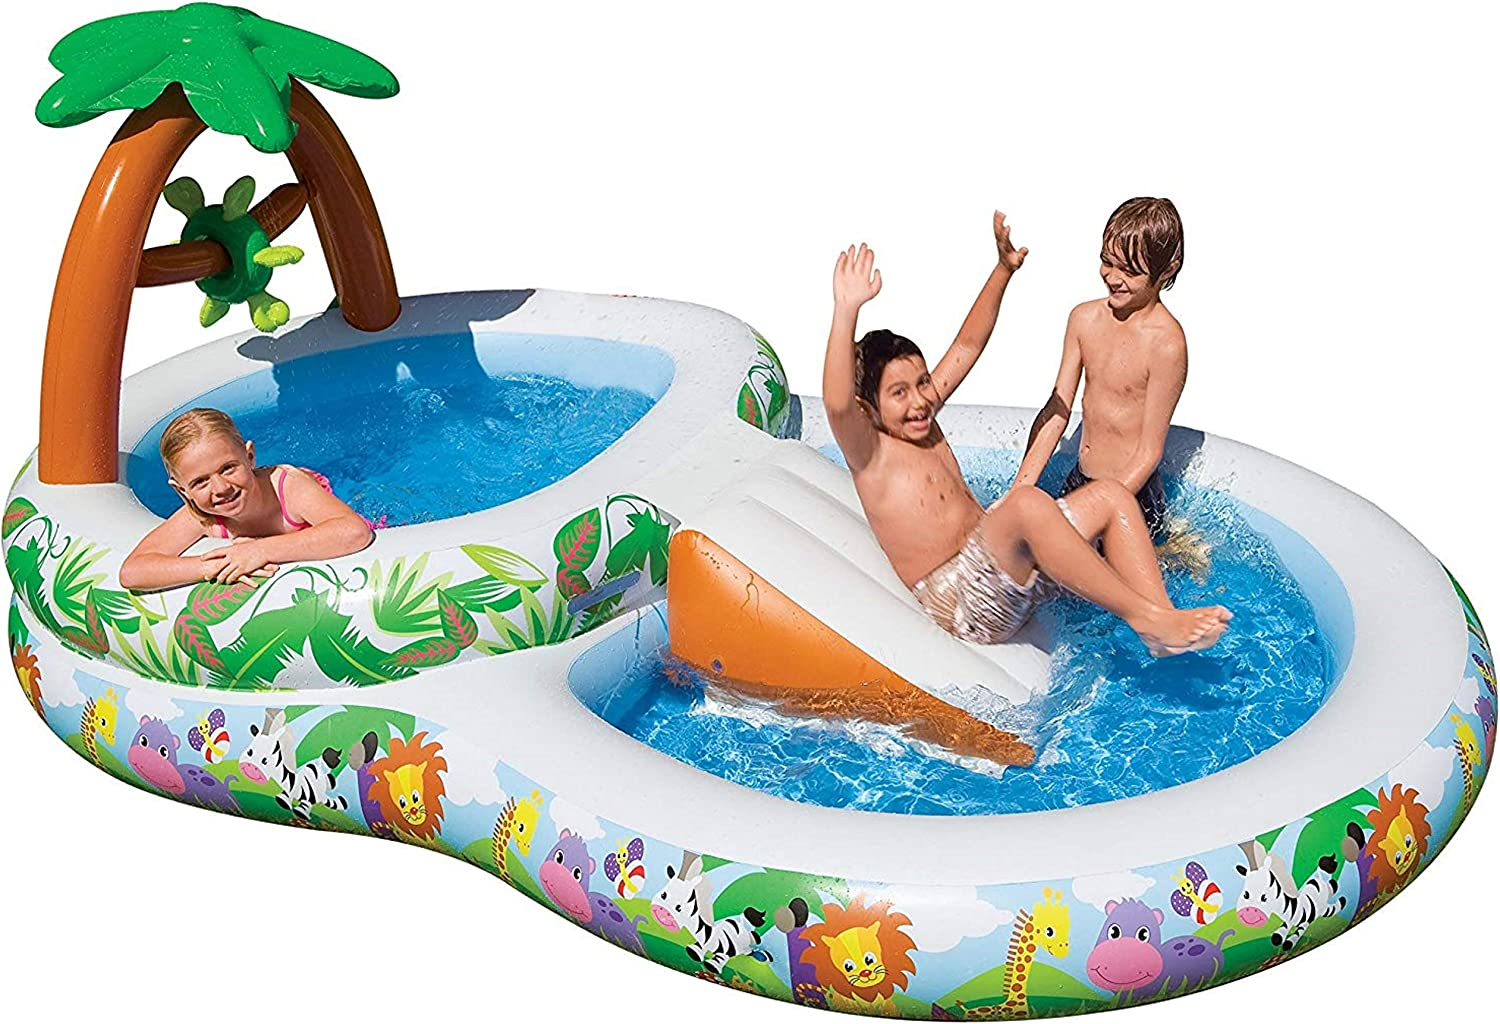 Top 10 Best Inflatable Pool For Toddlers (2020 Reviews & Buying Guide) 6